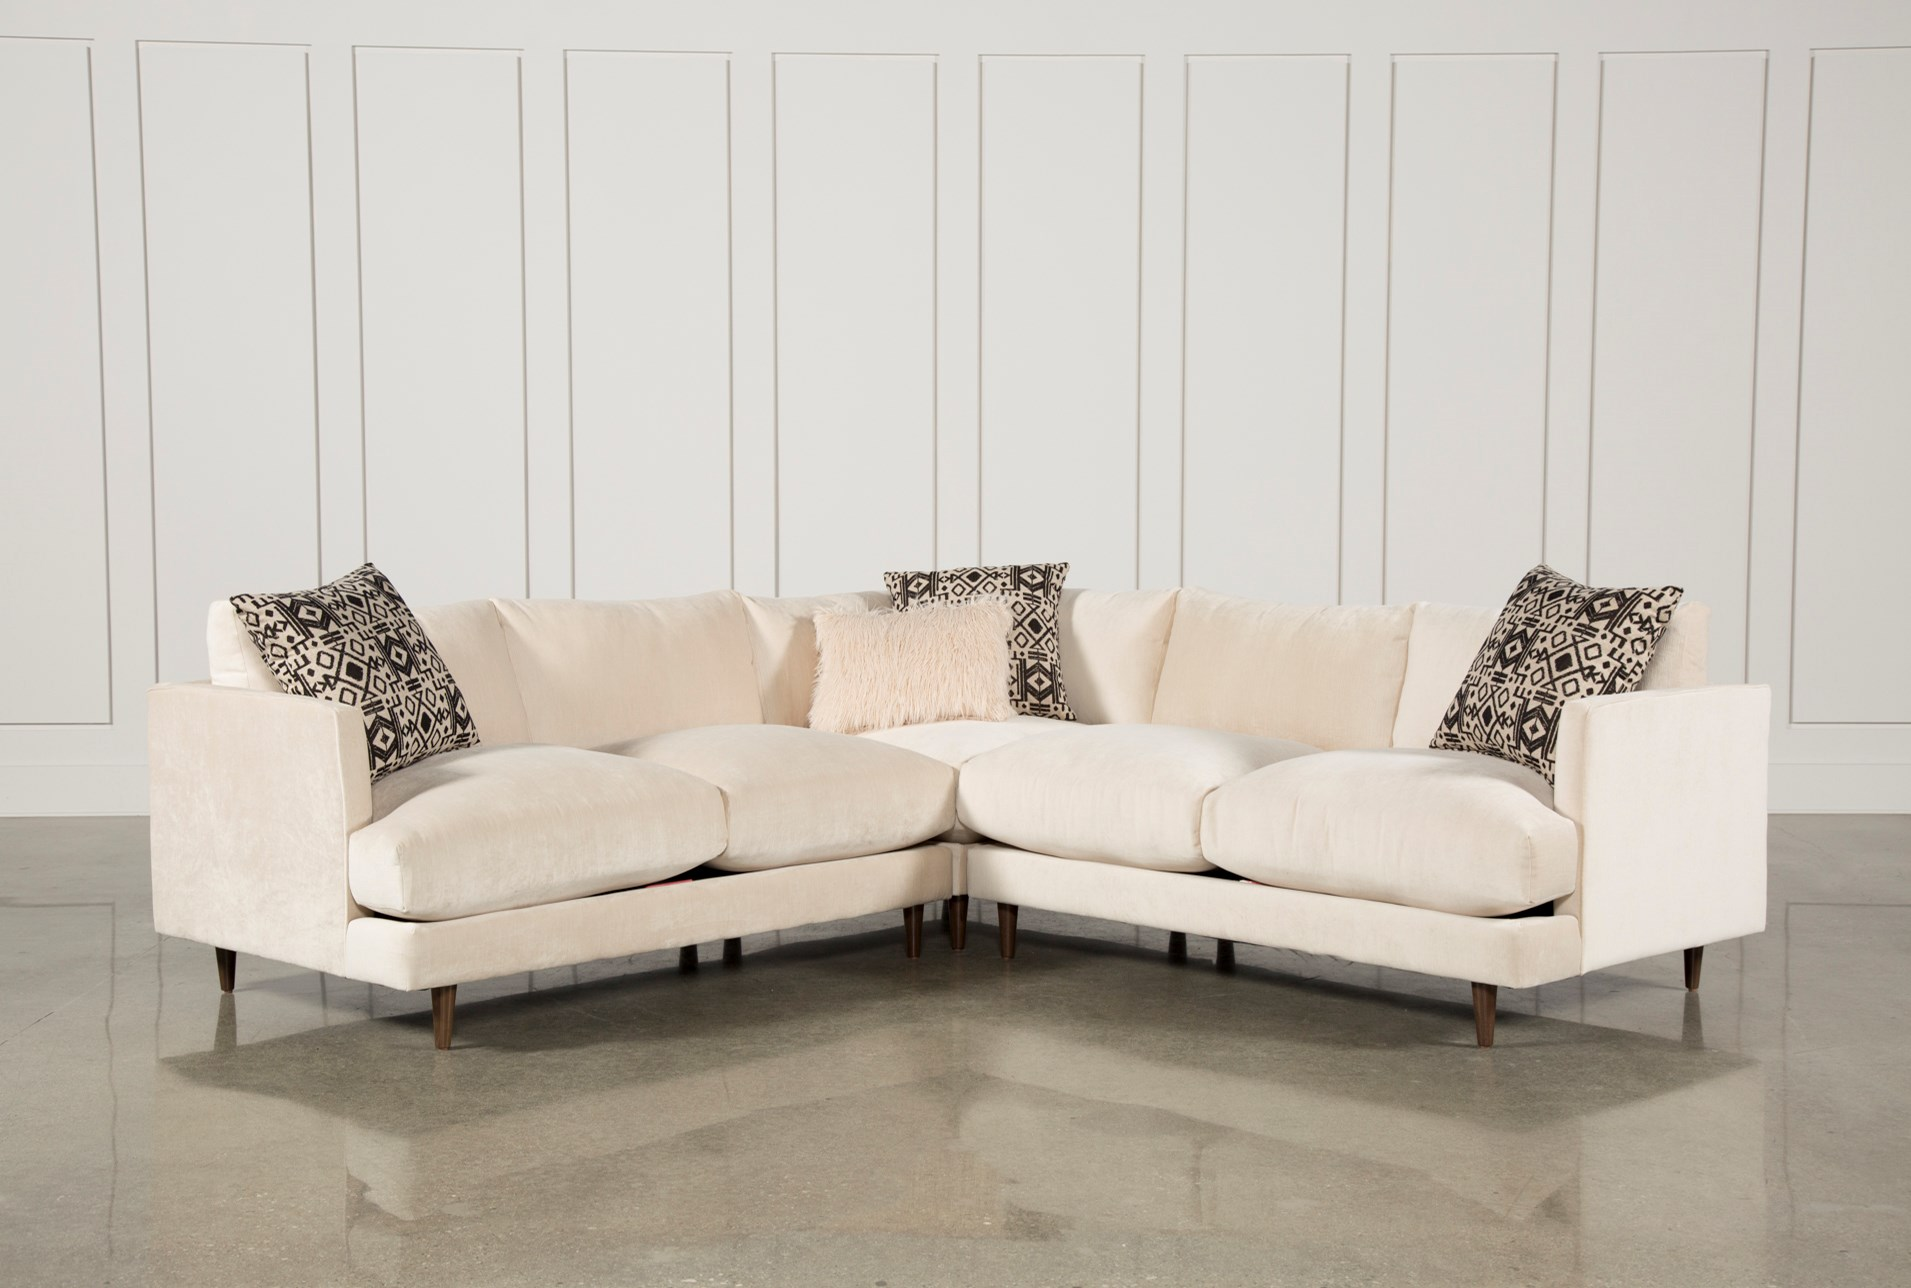 Adeline 3 piece sectional qty 1 has been successfully added to your cart